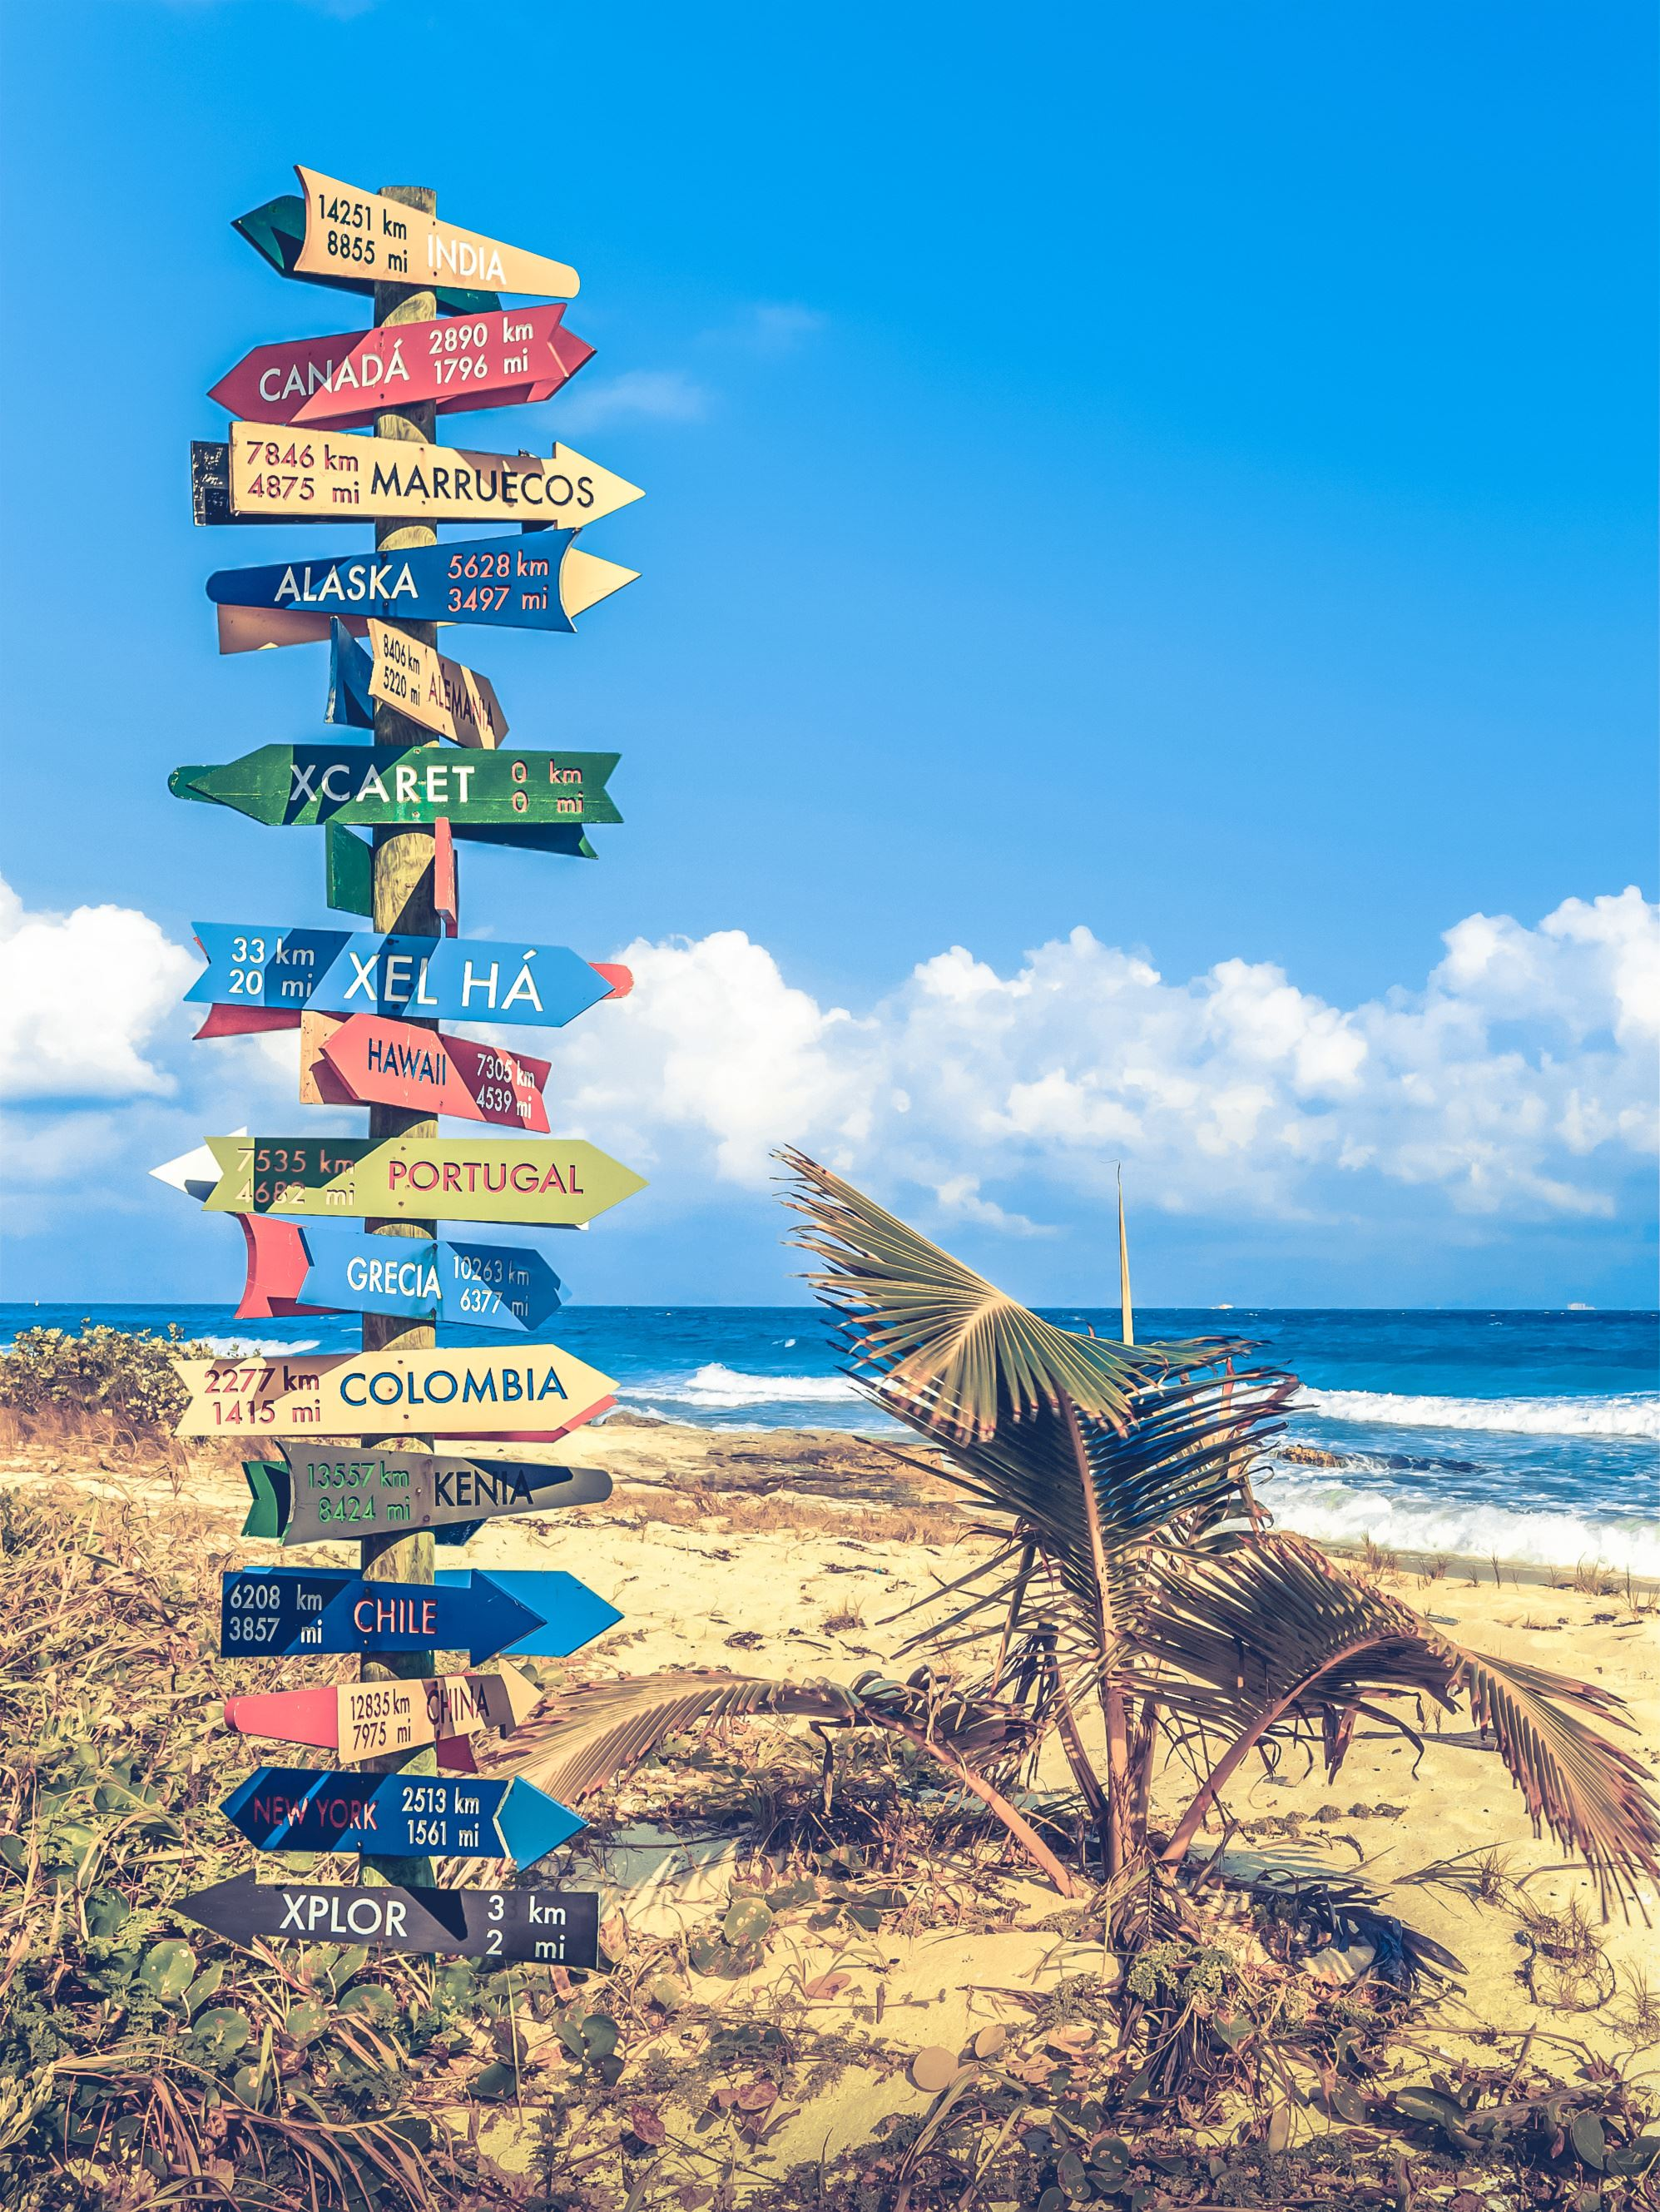 direction pole with signs for countries and cities on a beach